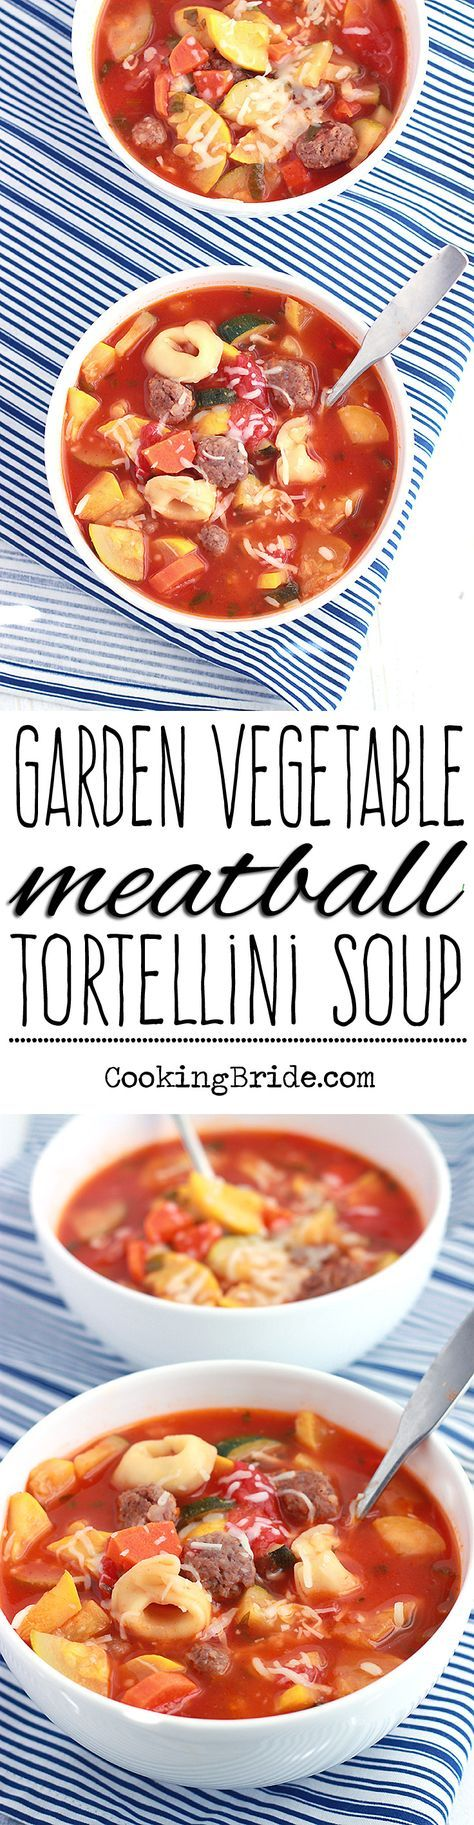 Meatball tortellini soup with diced tomatoes, basil, fresh veggies, sausage meatballs, and cheese tortellini.